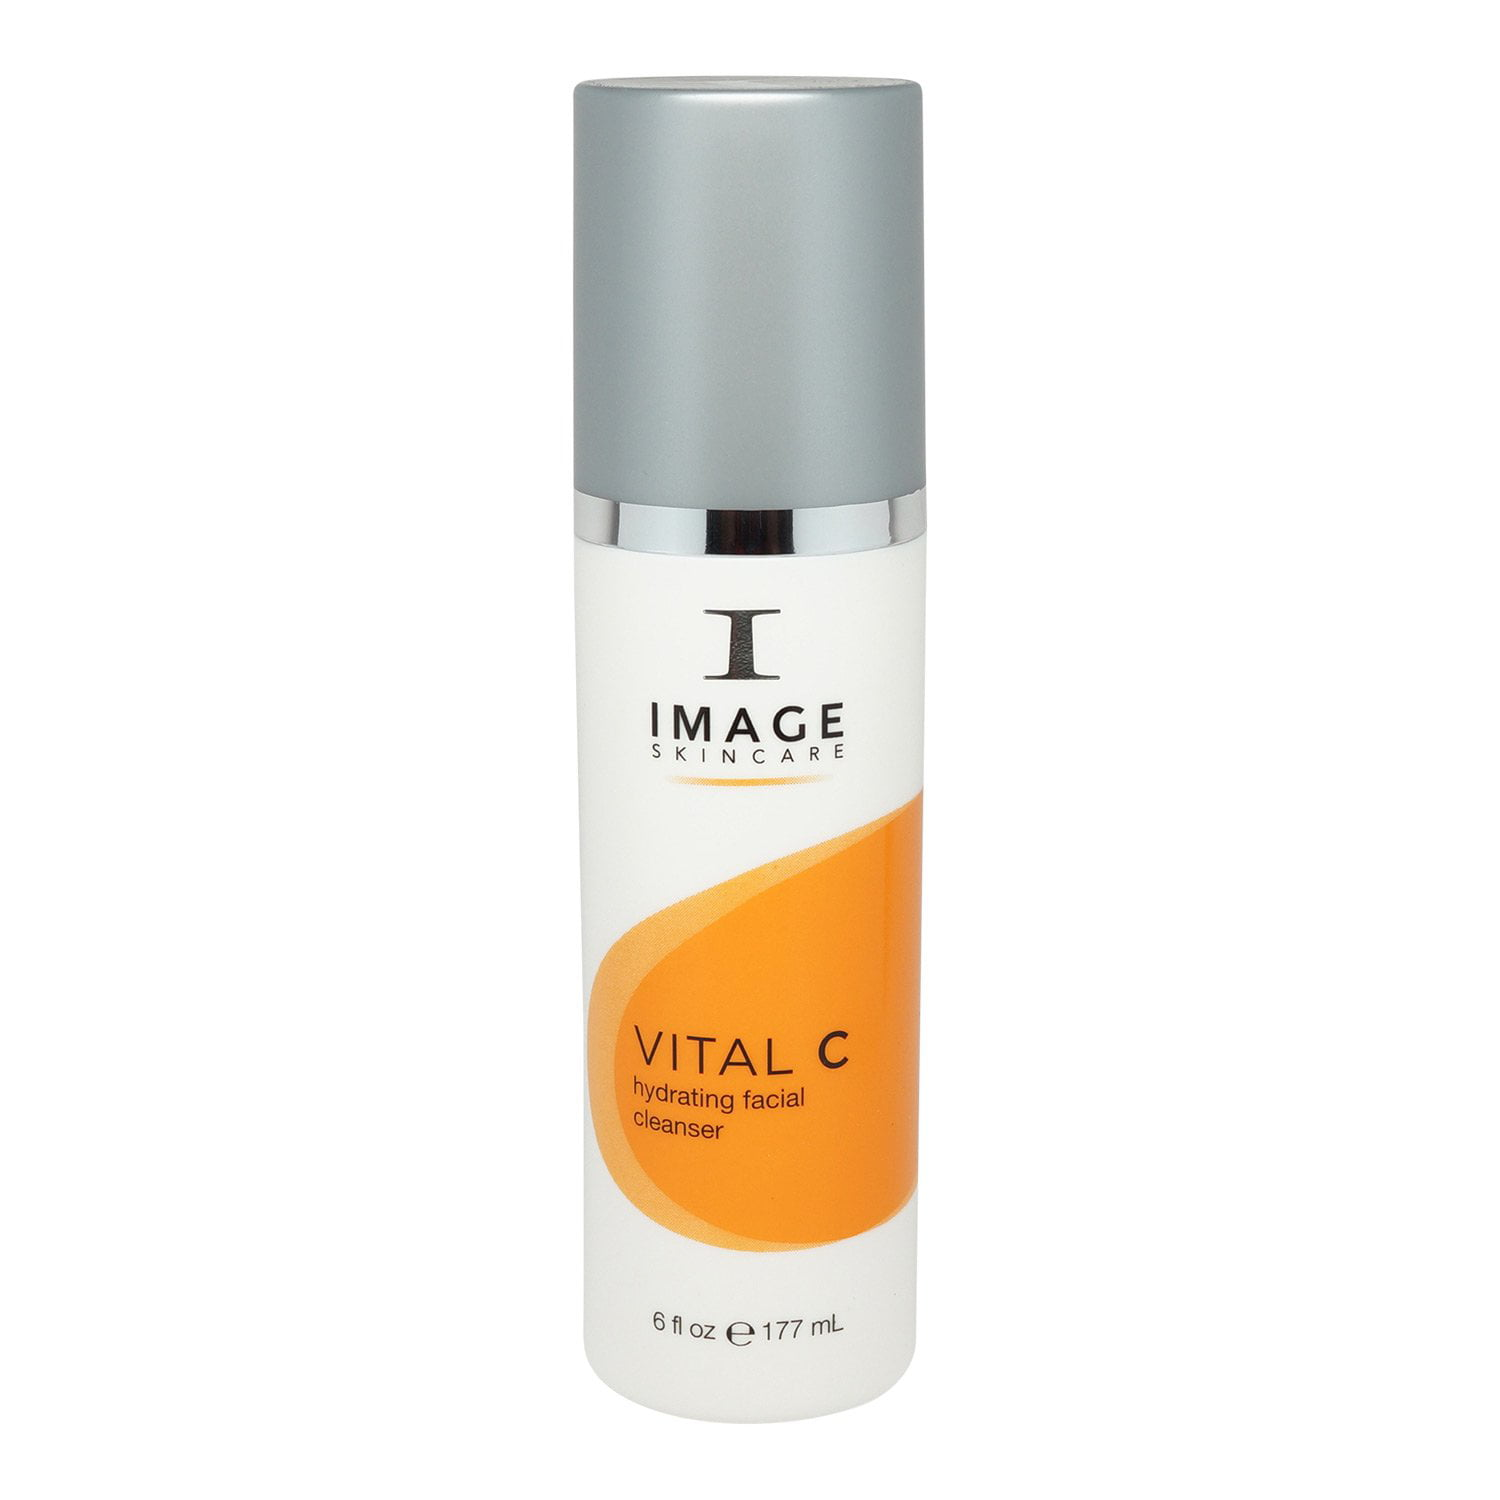 Image Skin Care Image Skin Care Vital C Hydrating Facial Cleanser